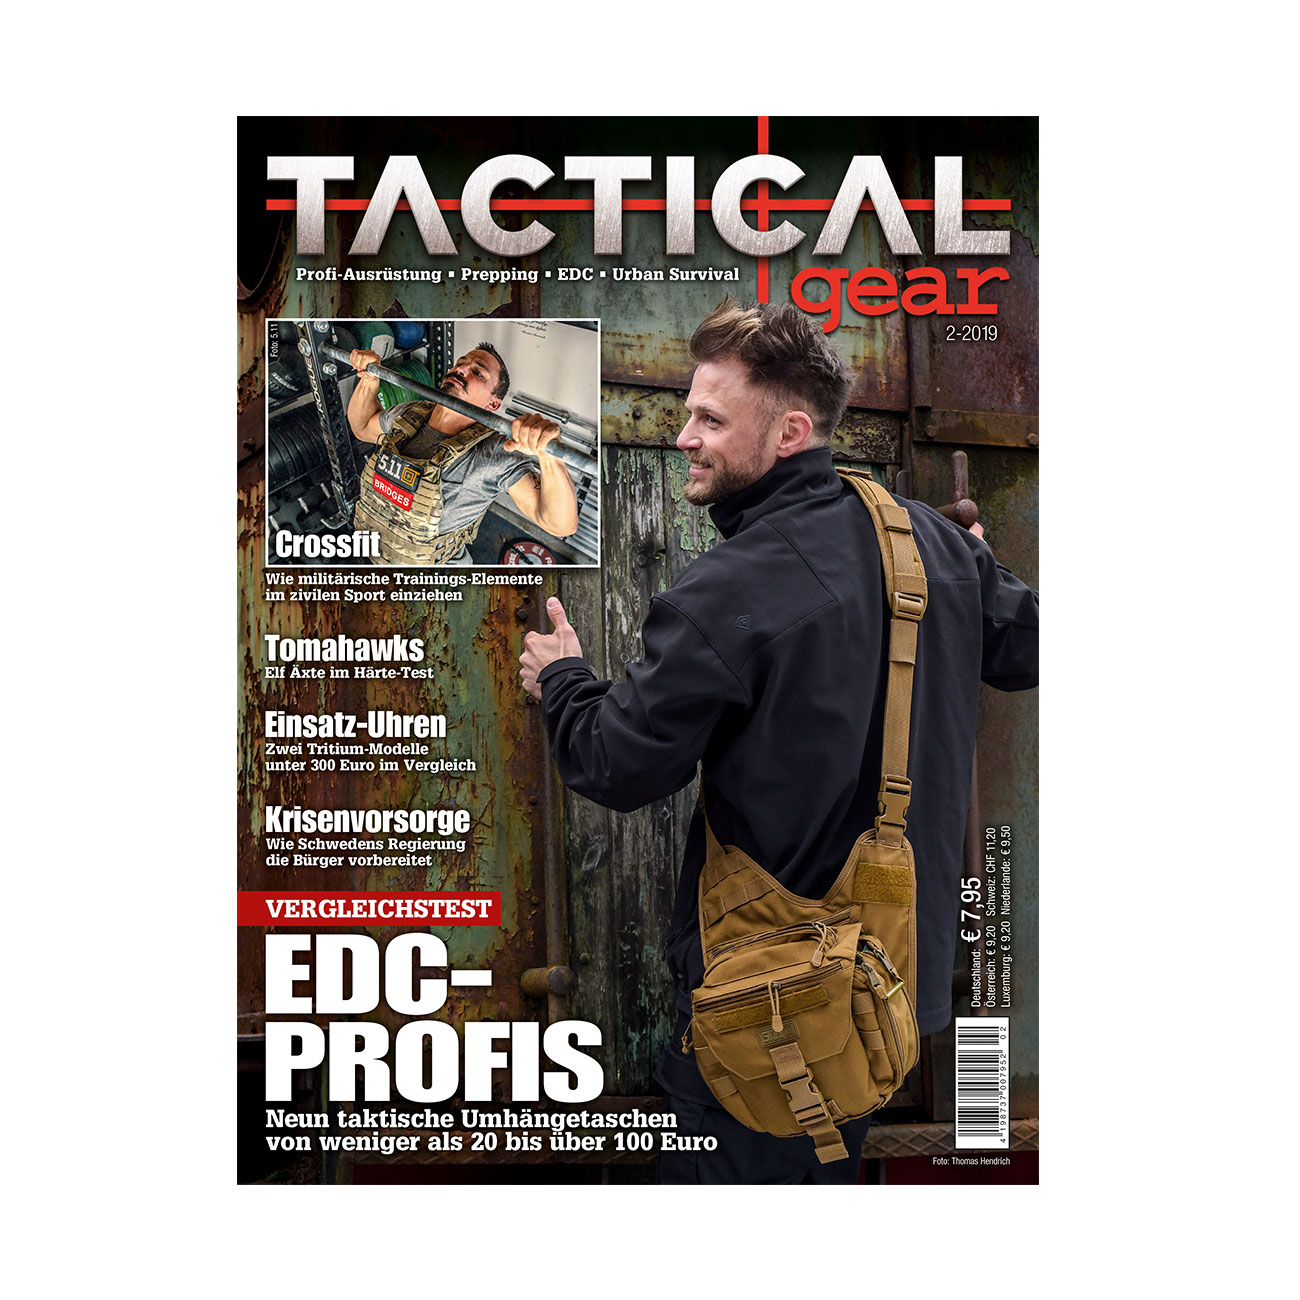 Tactical Gear Magazin Ausgabe 02/2019 0